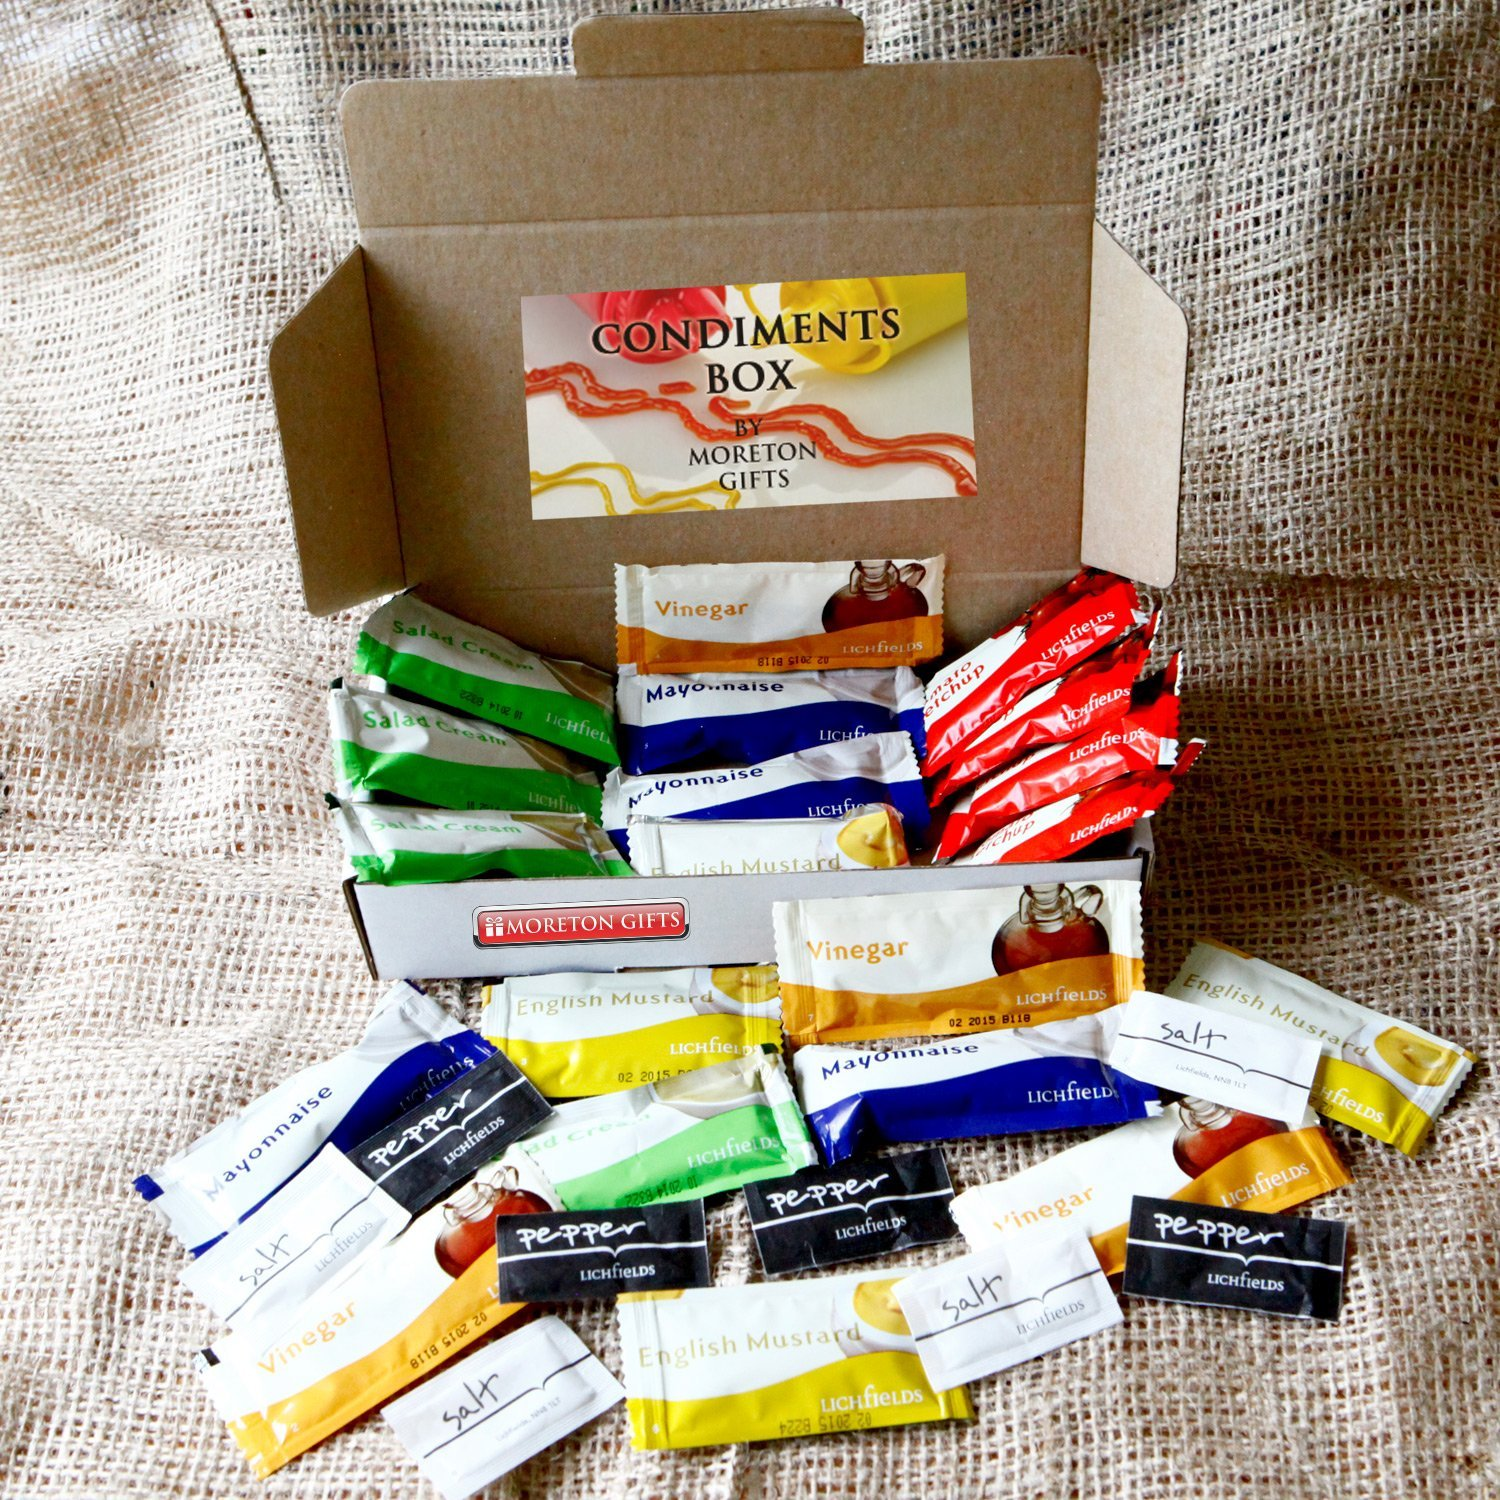 Moreton Gifts Weekend Travel Essentials Condiments Box - Ketchup, Salad Cream, Mayonnaise, Mustard, Vinegar, Salt & Pepper - Great For Holidays, Festivals, Camping, Offices - By